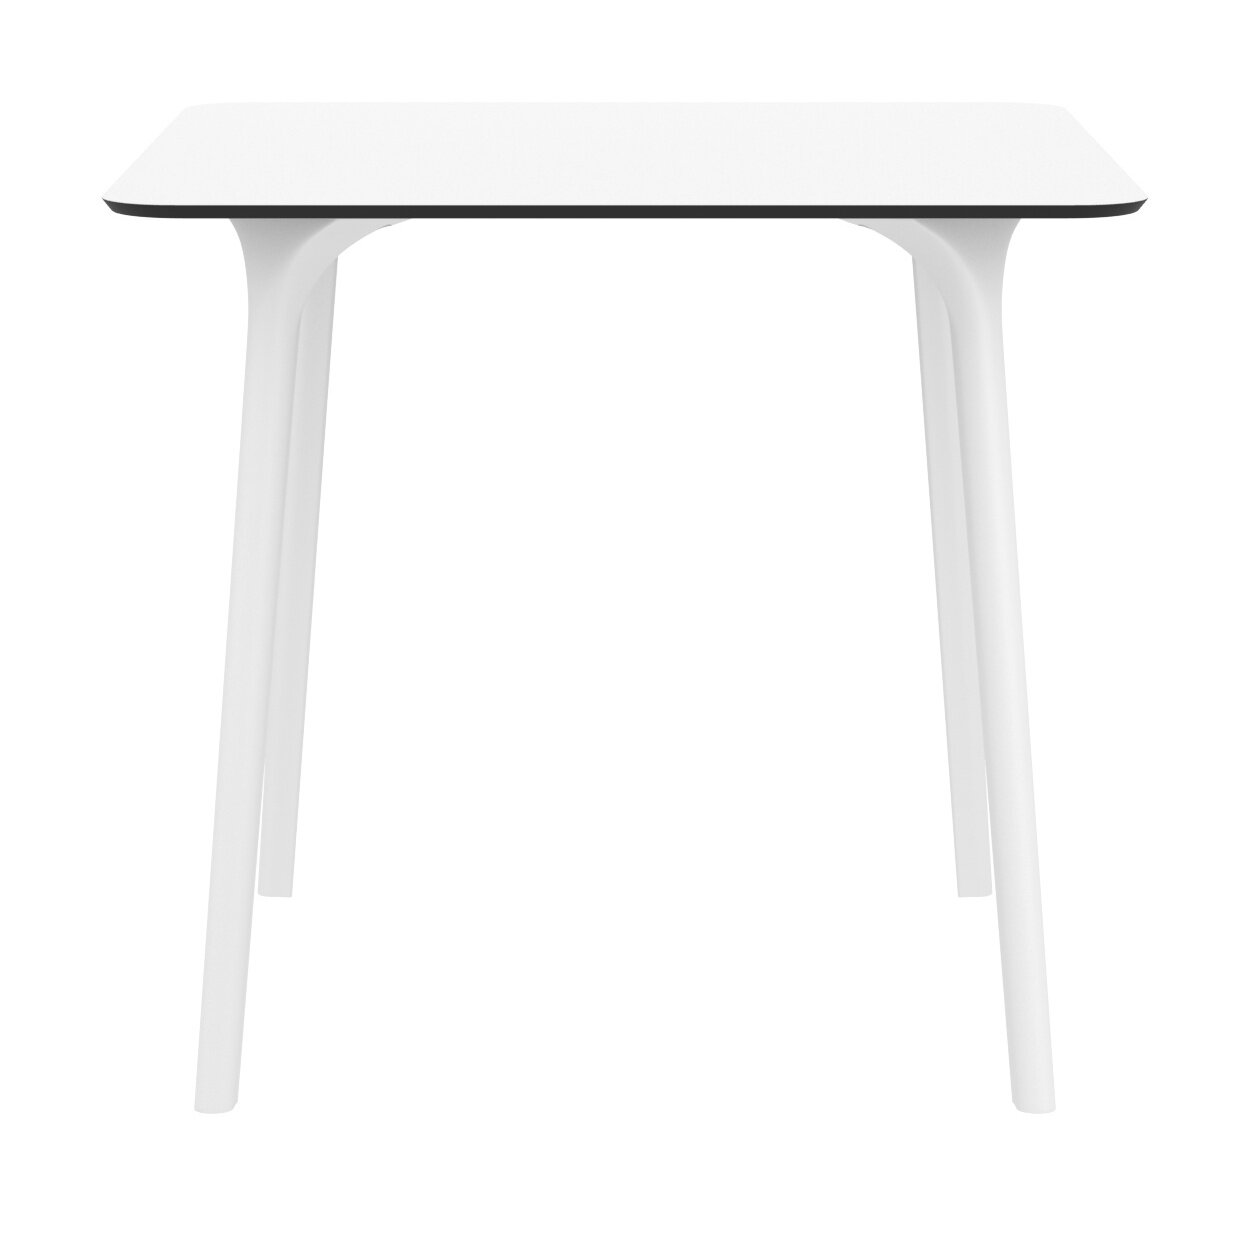 Goggins Plastic Resin Dining Table